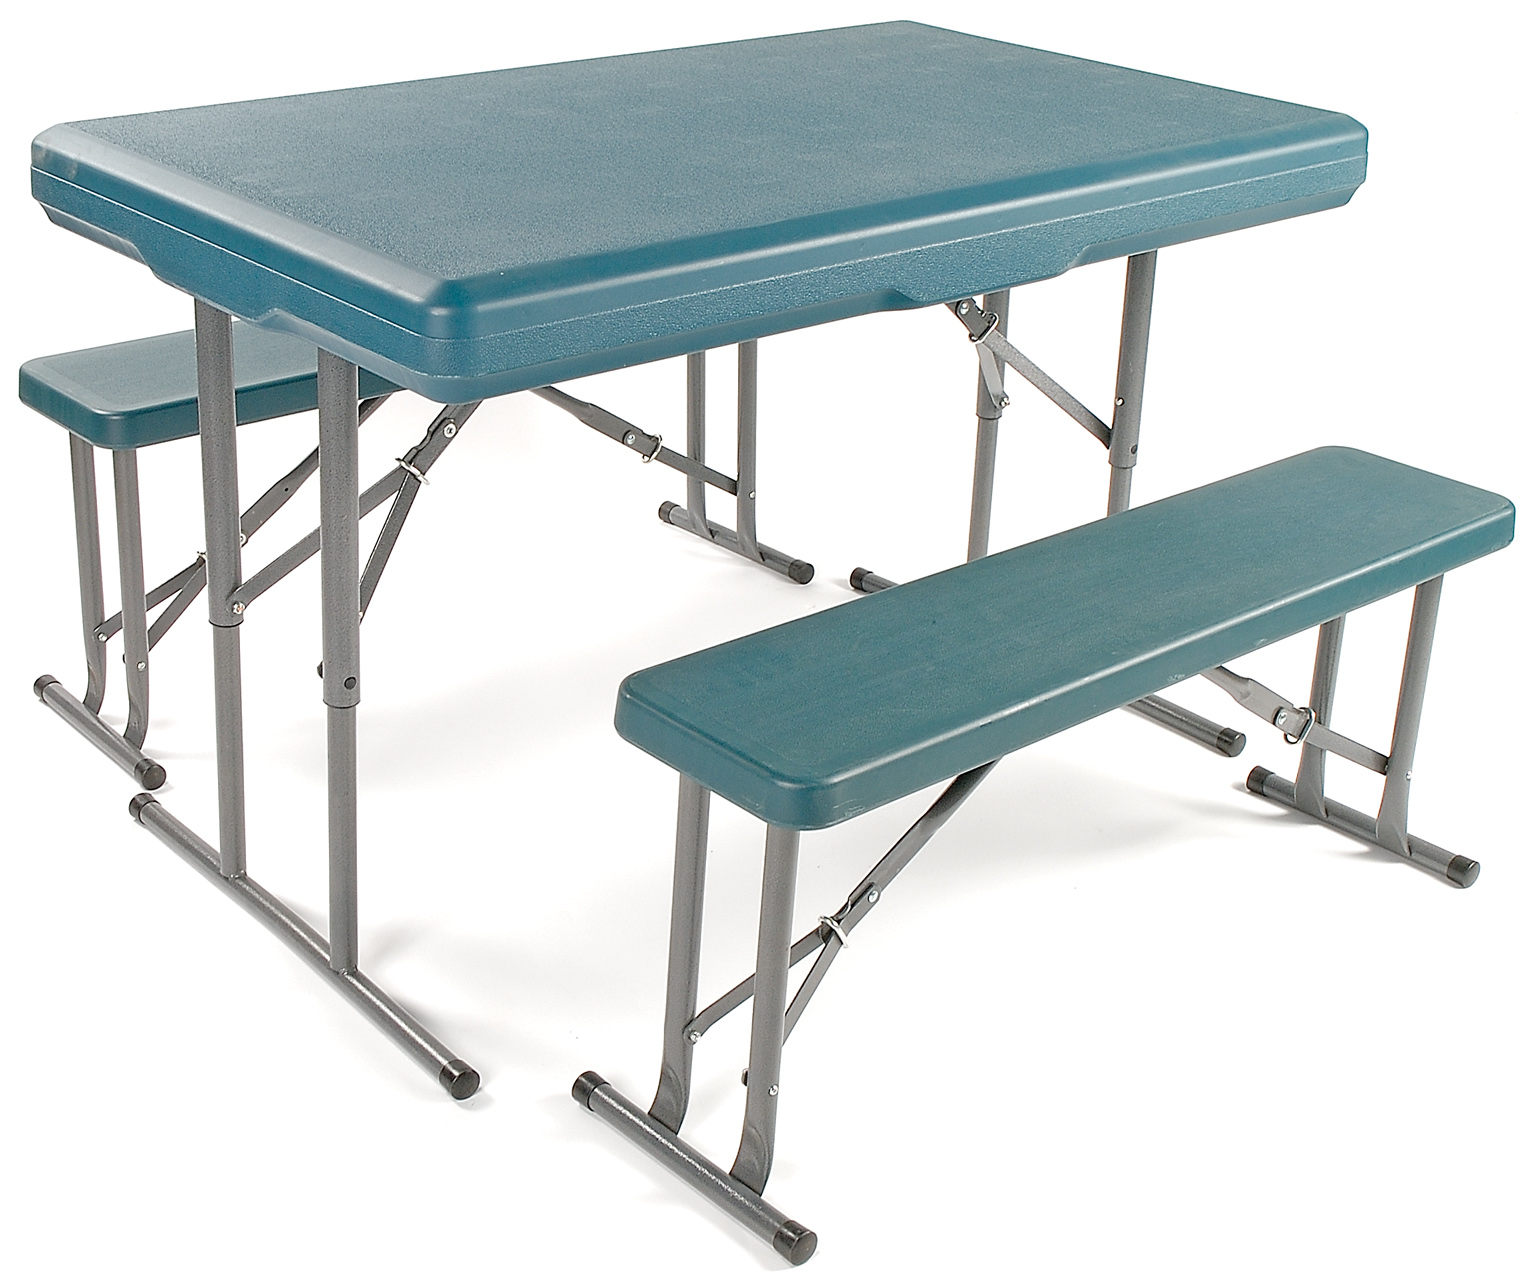 folding camping table and chairs captivating portable table with chairs folding picnic fair table.jpg table  full version xwexjti